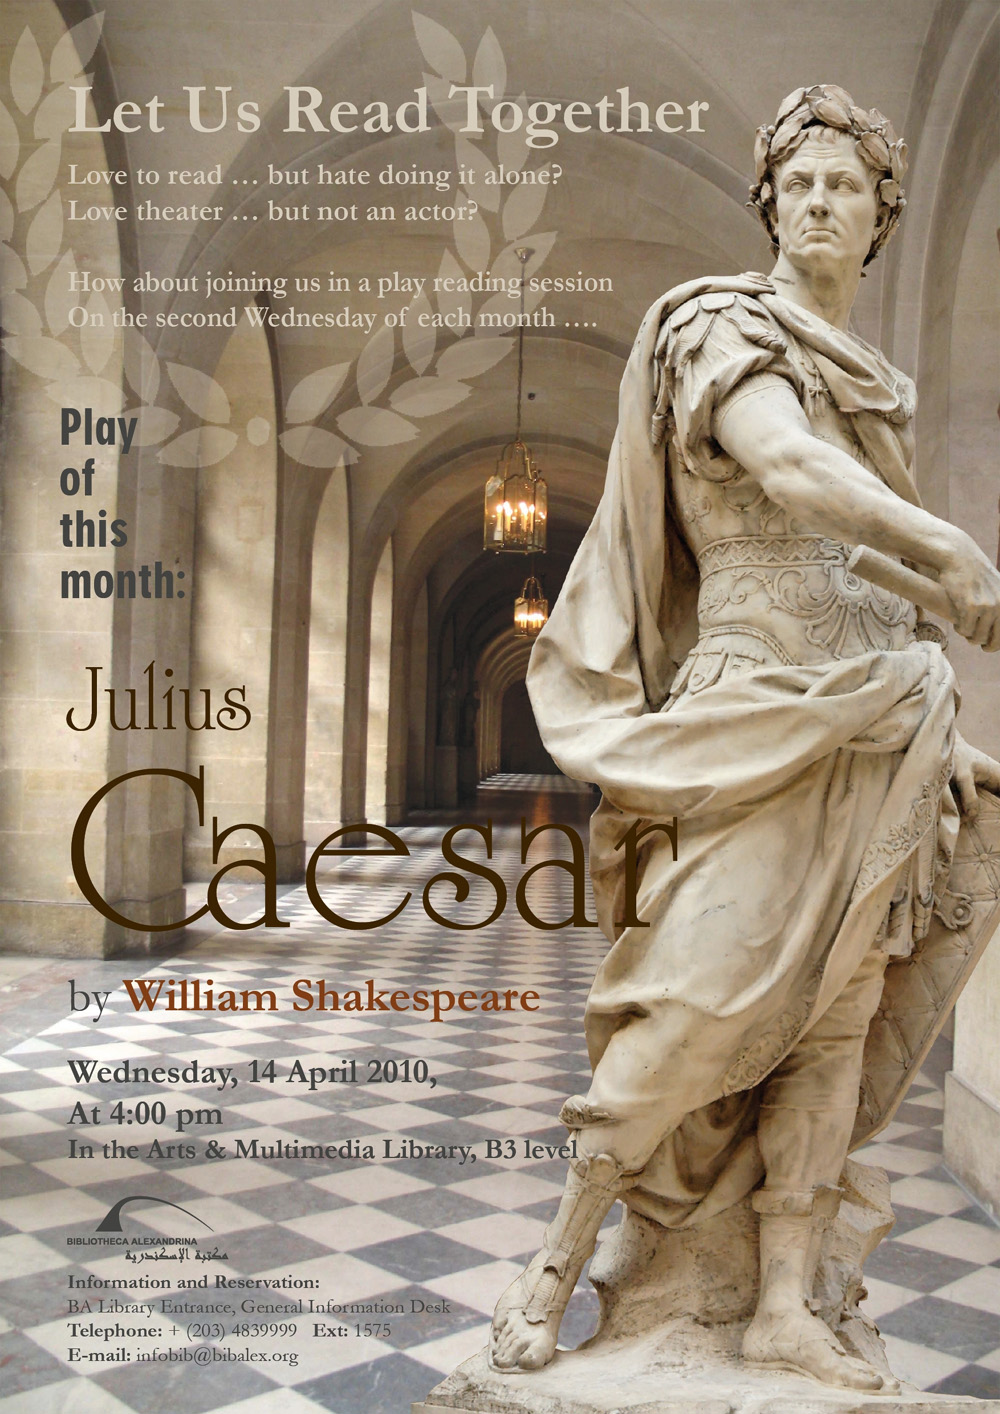 the conspiracy of a friend in the tragedy of julius caesar a play by william shakespeare The tragedy of julius caesar by william shakespeare is a play about betrayal, revenge, and love caesar is betrayed by some of his closet friends and followers anthony swears to get revenge on the death of caesar because he loved caesar that much.